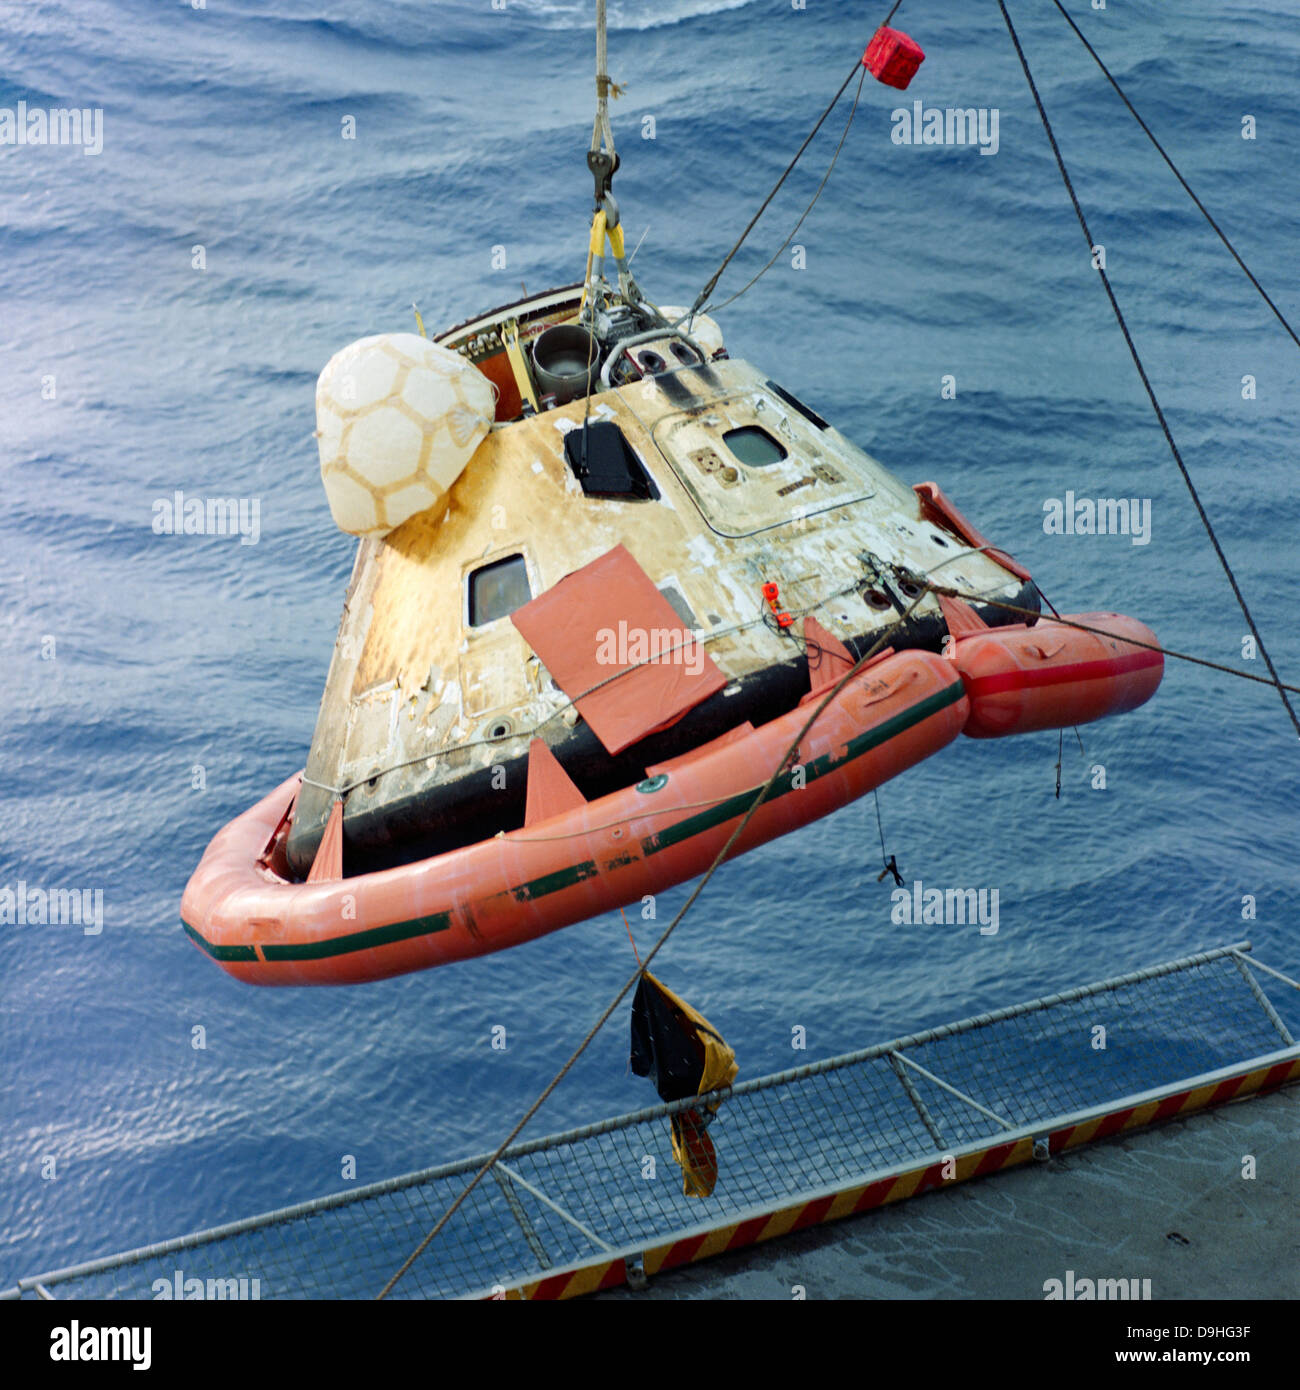 The Apollo 8 capsule being hoisted aboard the recovery carrier. - Stock Image